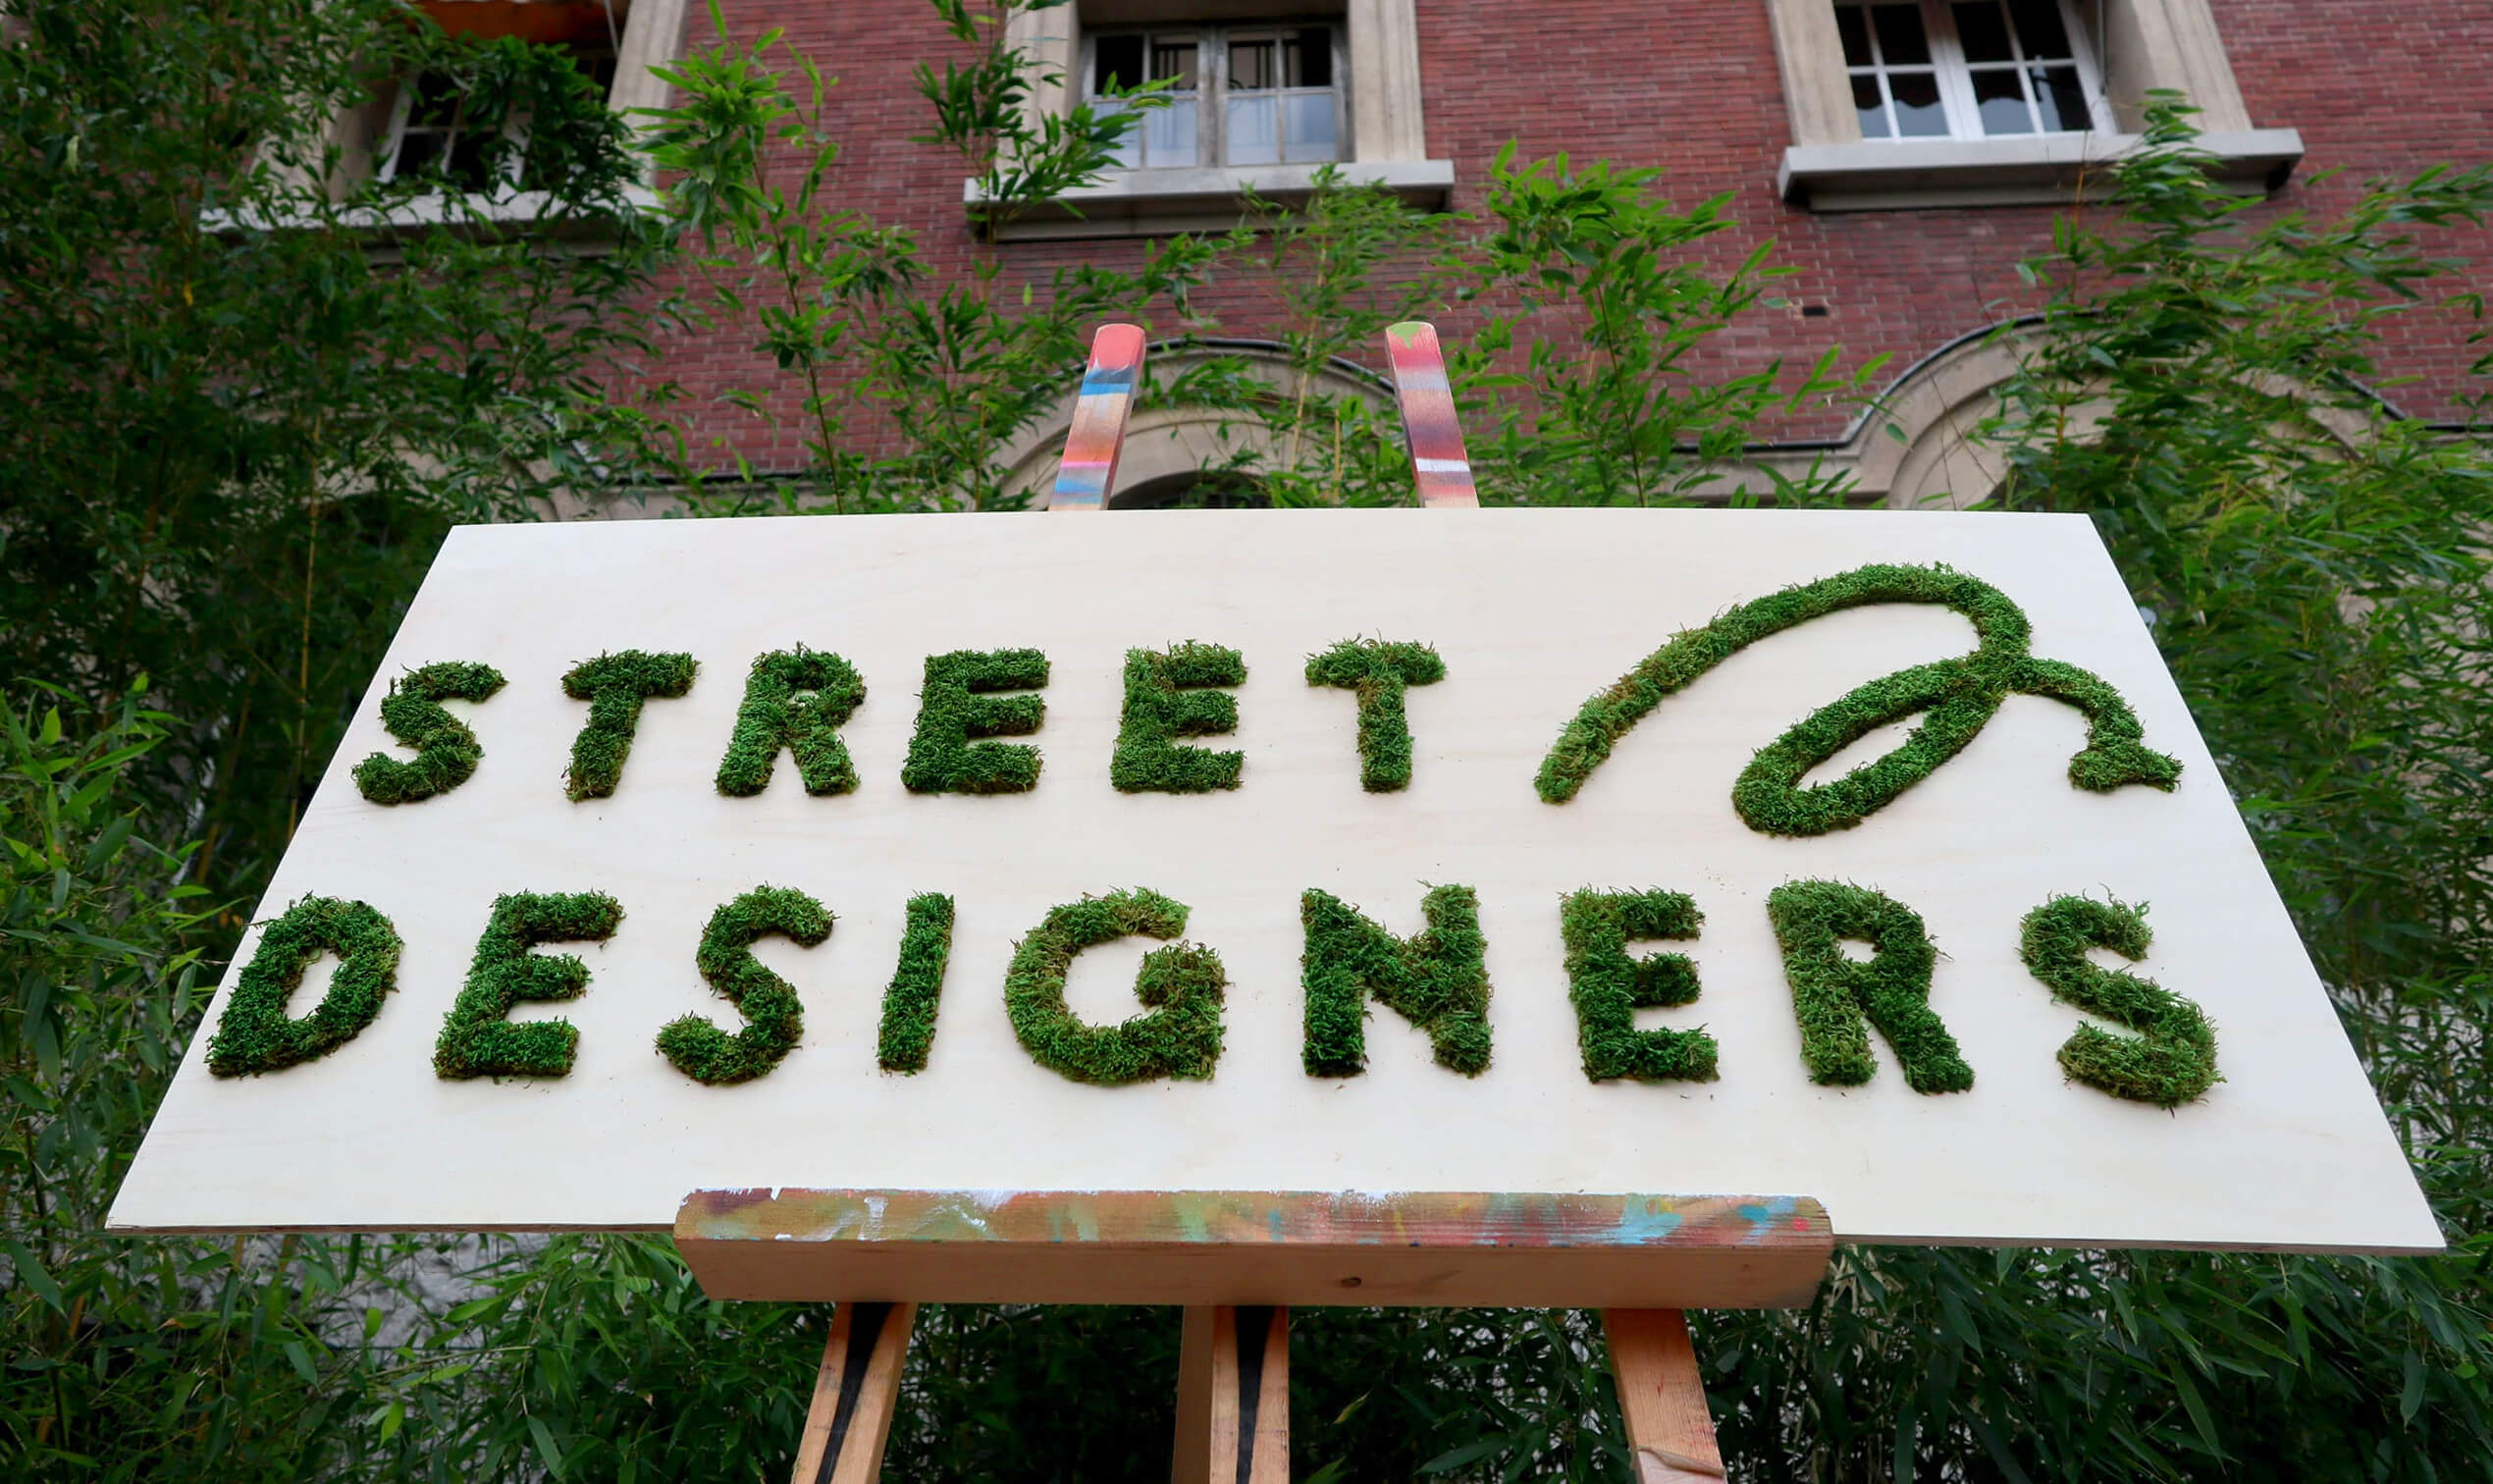 street designers blog posts thumbnails team building evenements